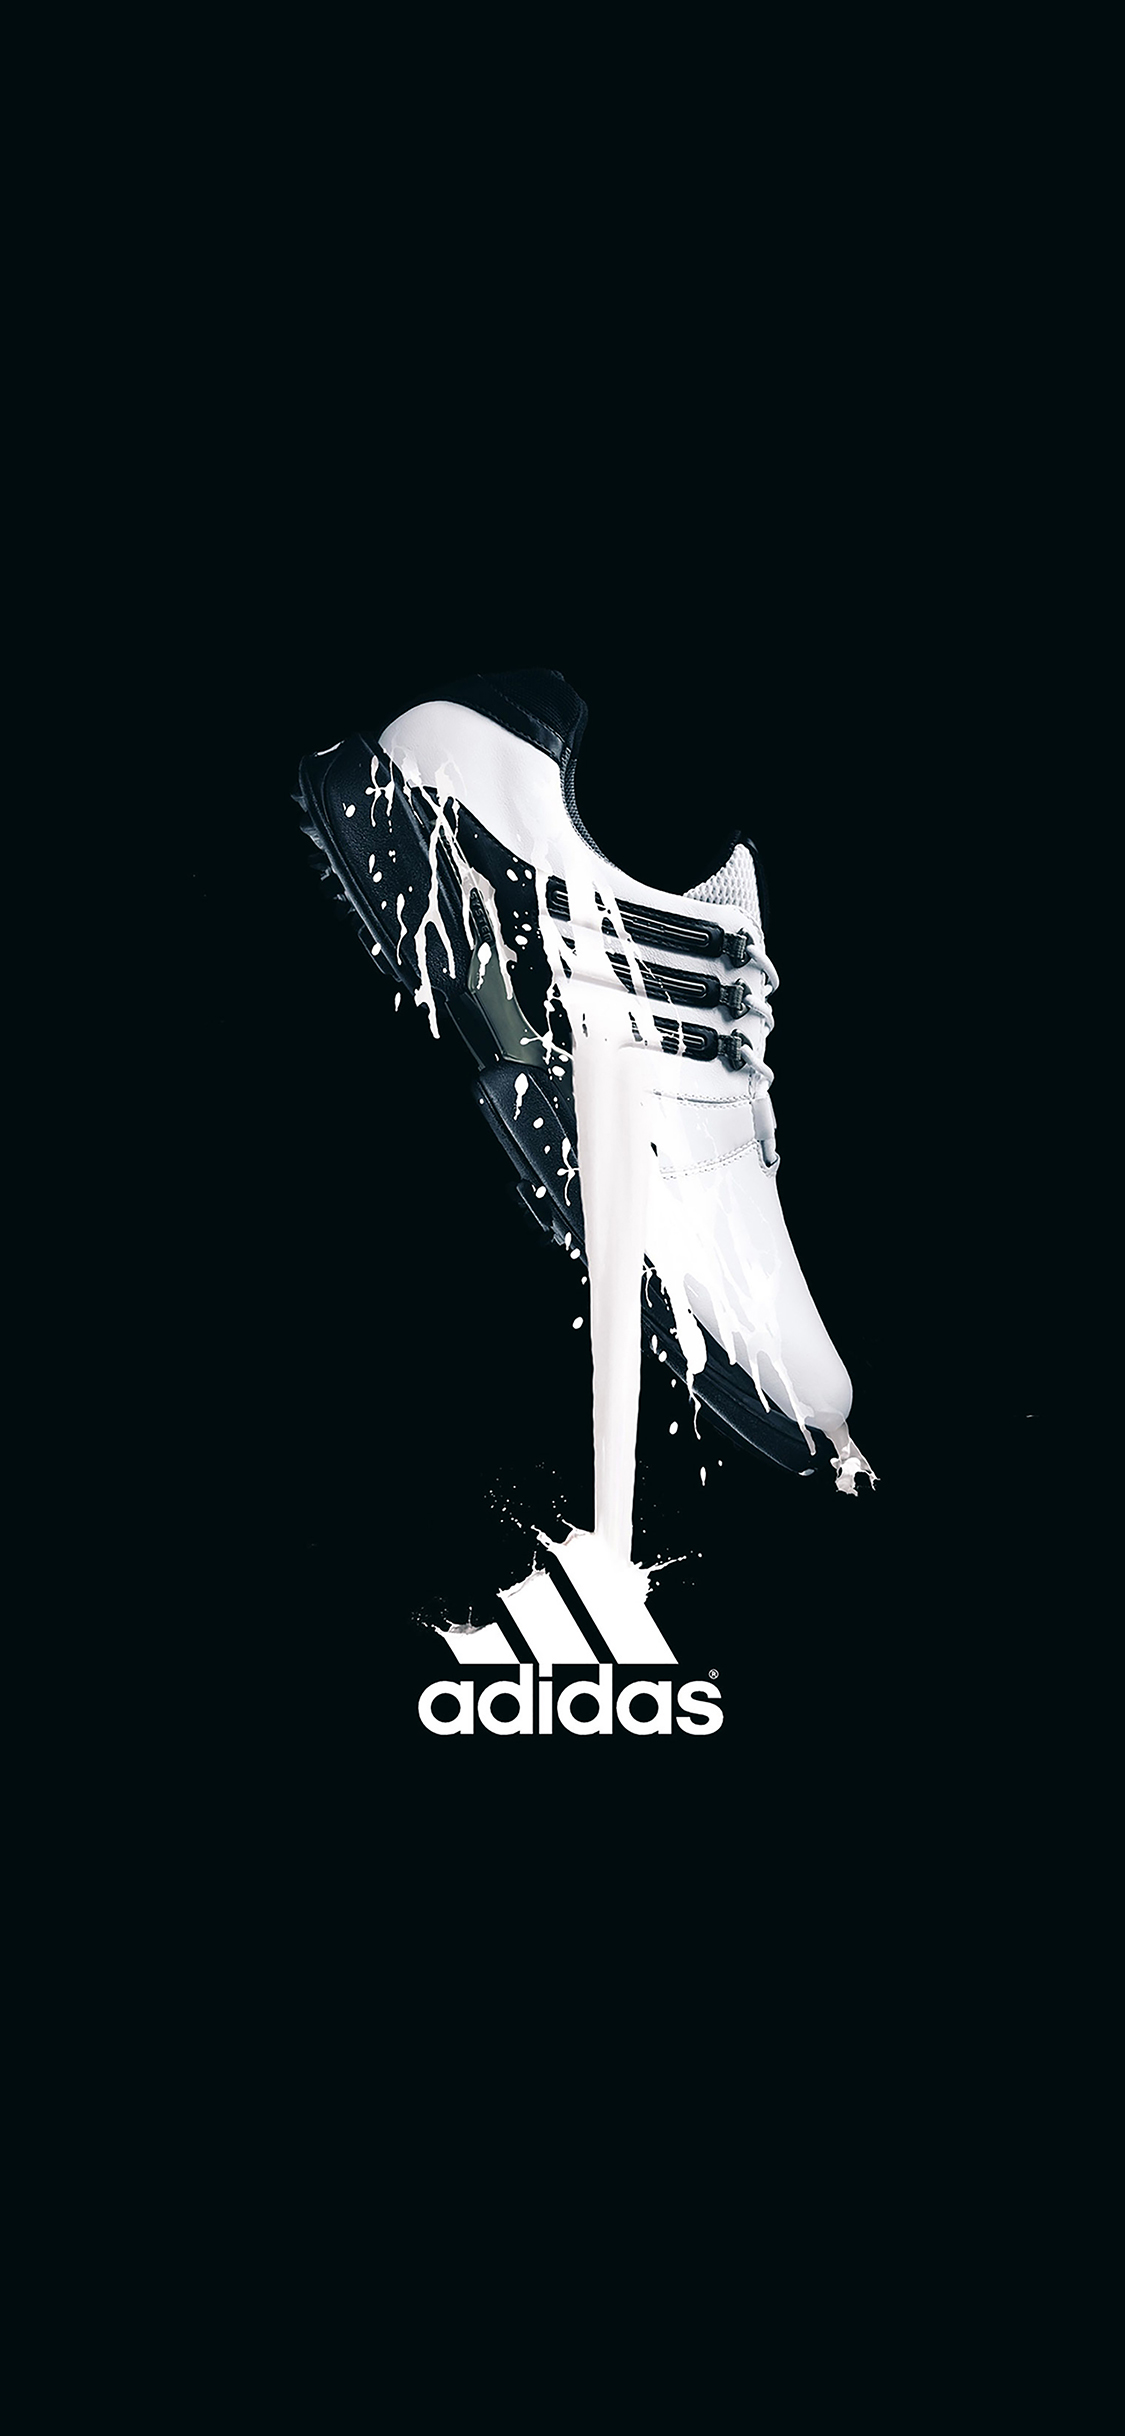 iPhoneXpapers.com-Apple-iPhone-wallpaper-ab48-wallpaper-adidas-black-logo-sports